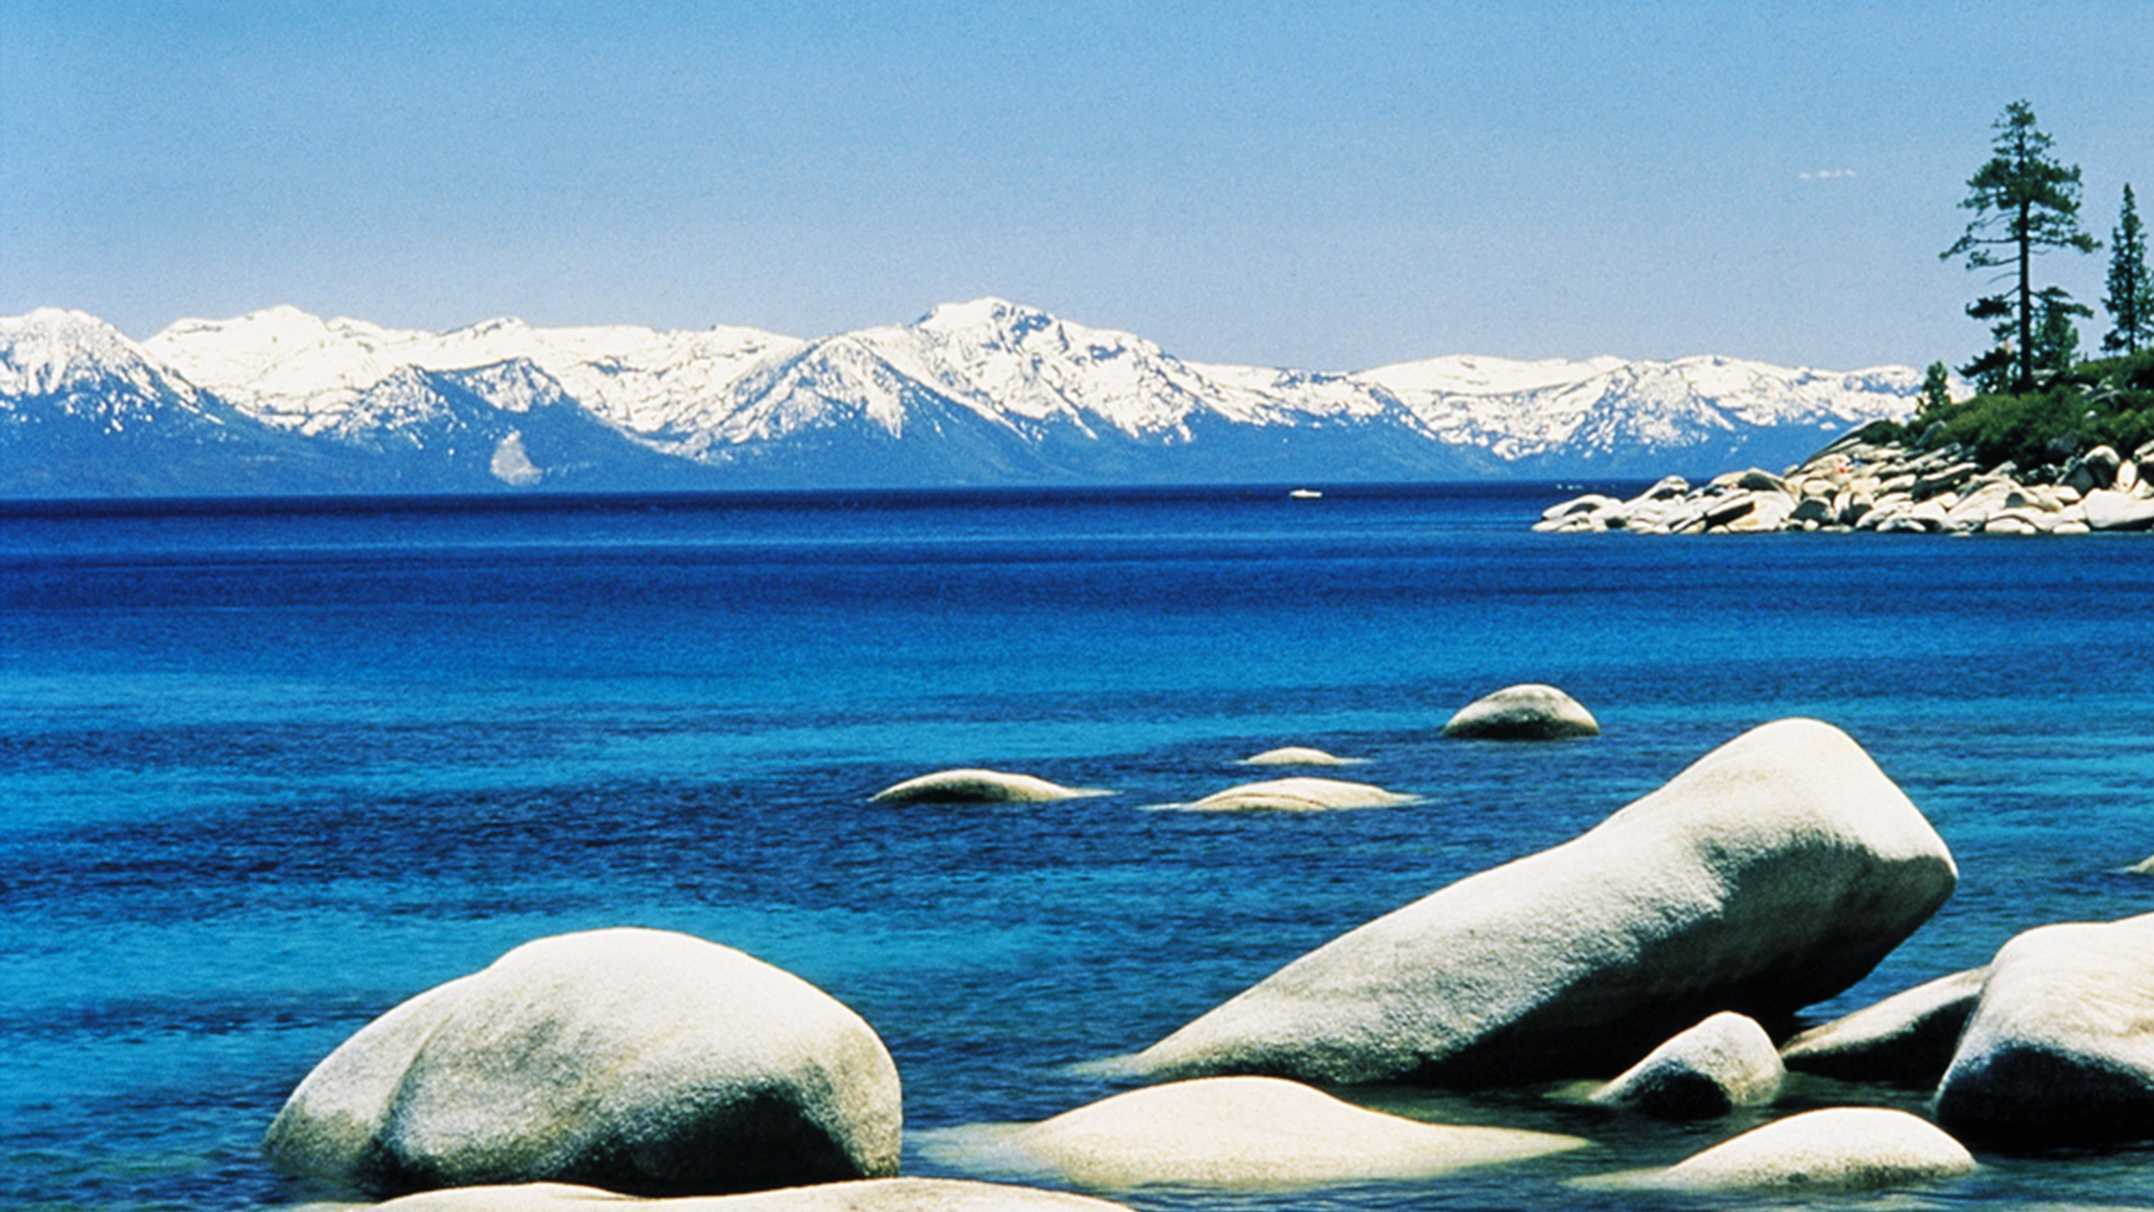 Lake Tahoe is seen here in March 2008, when its mountains had much more snow compared to 2014.